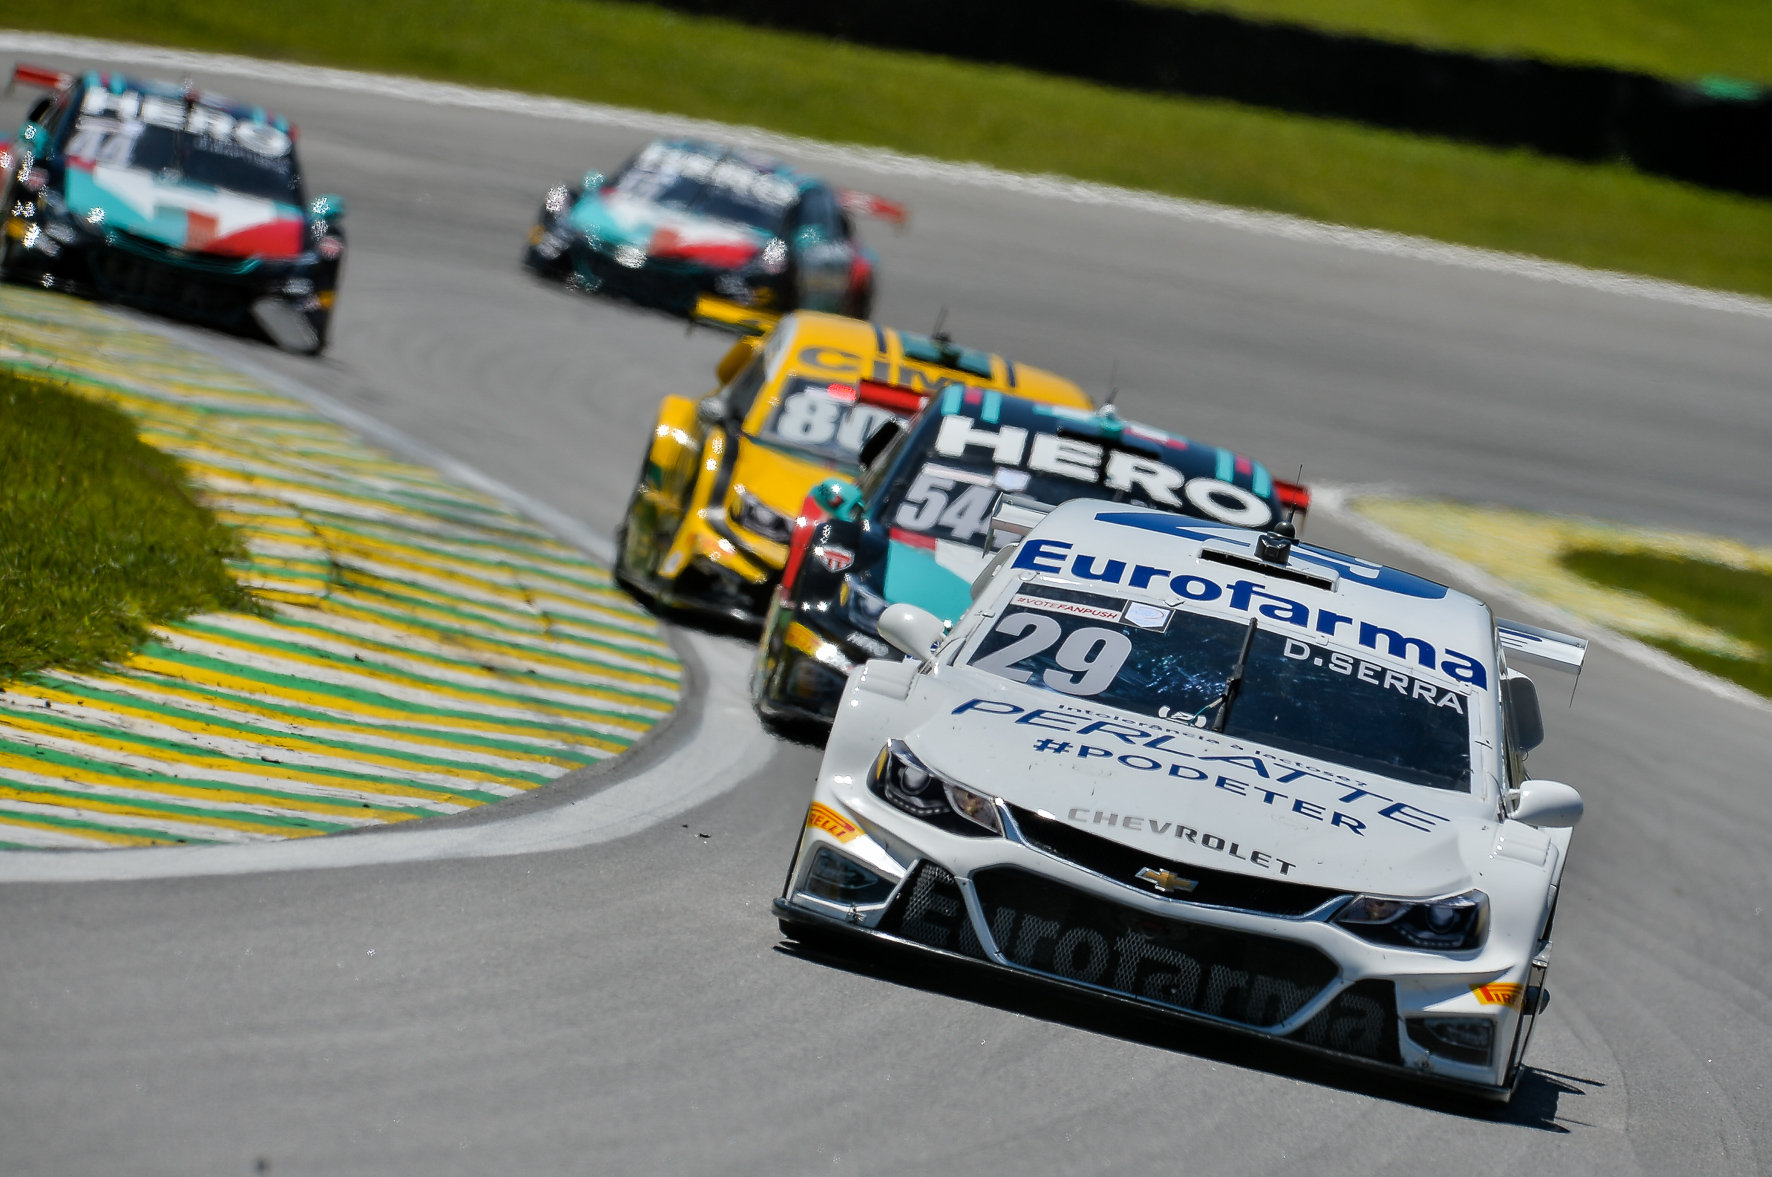 StockCar2018_dudabairros_Interlagos-4353